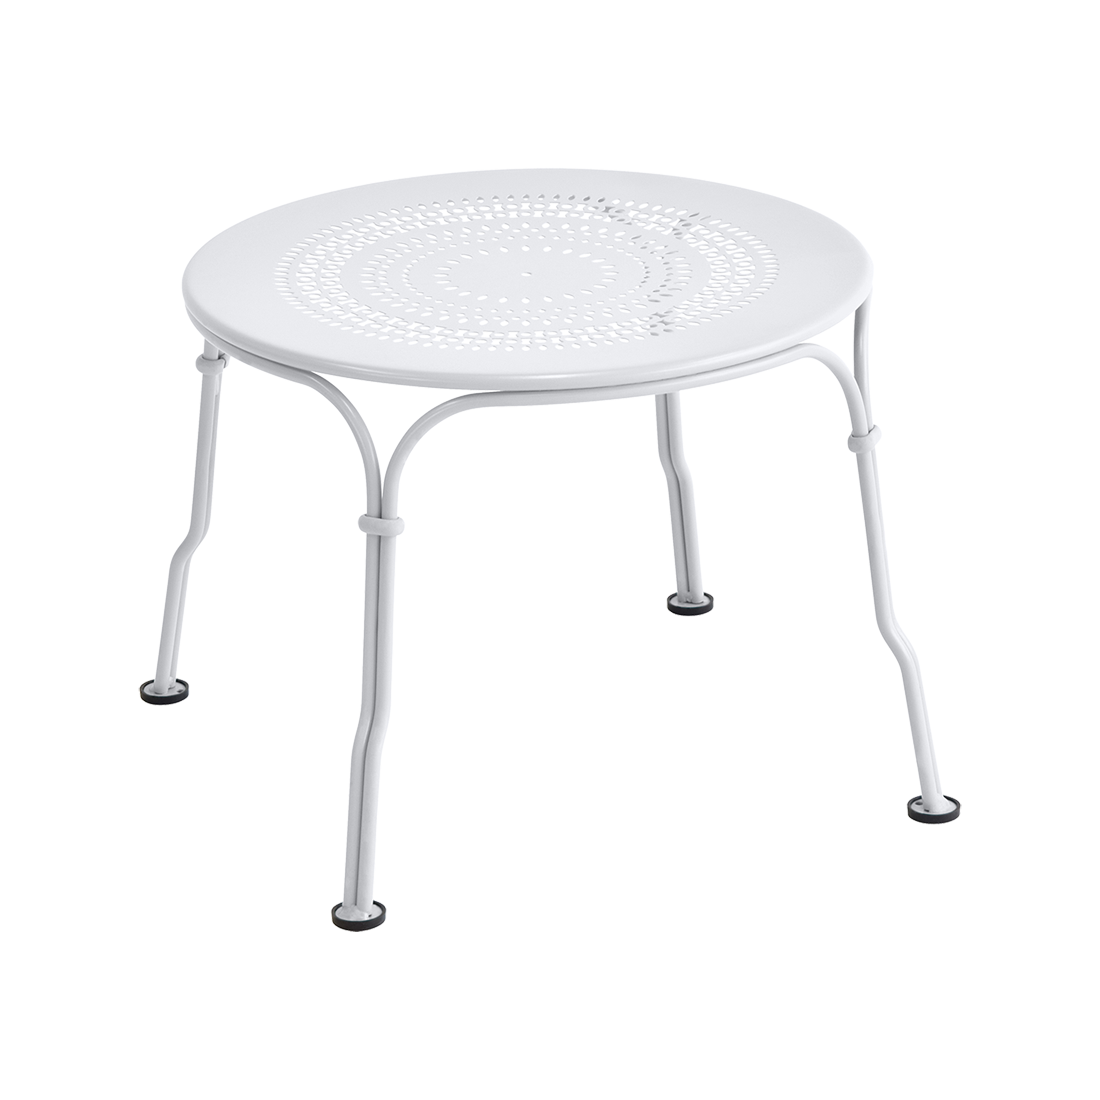 petite table basse table basse blanche, table basse metal